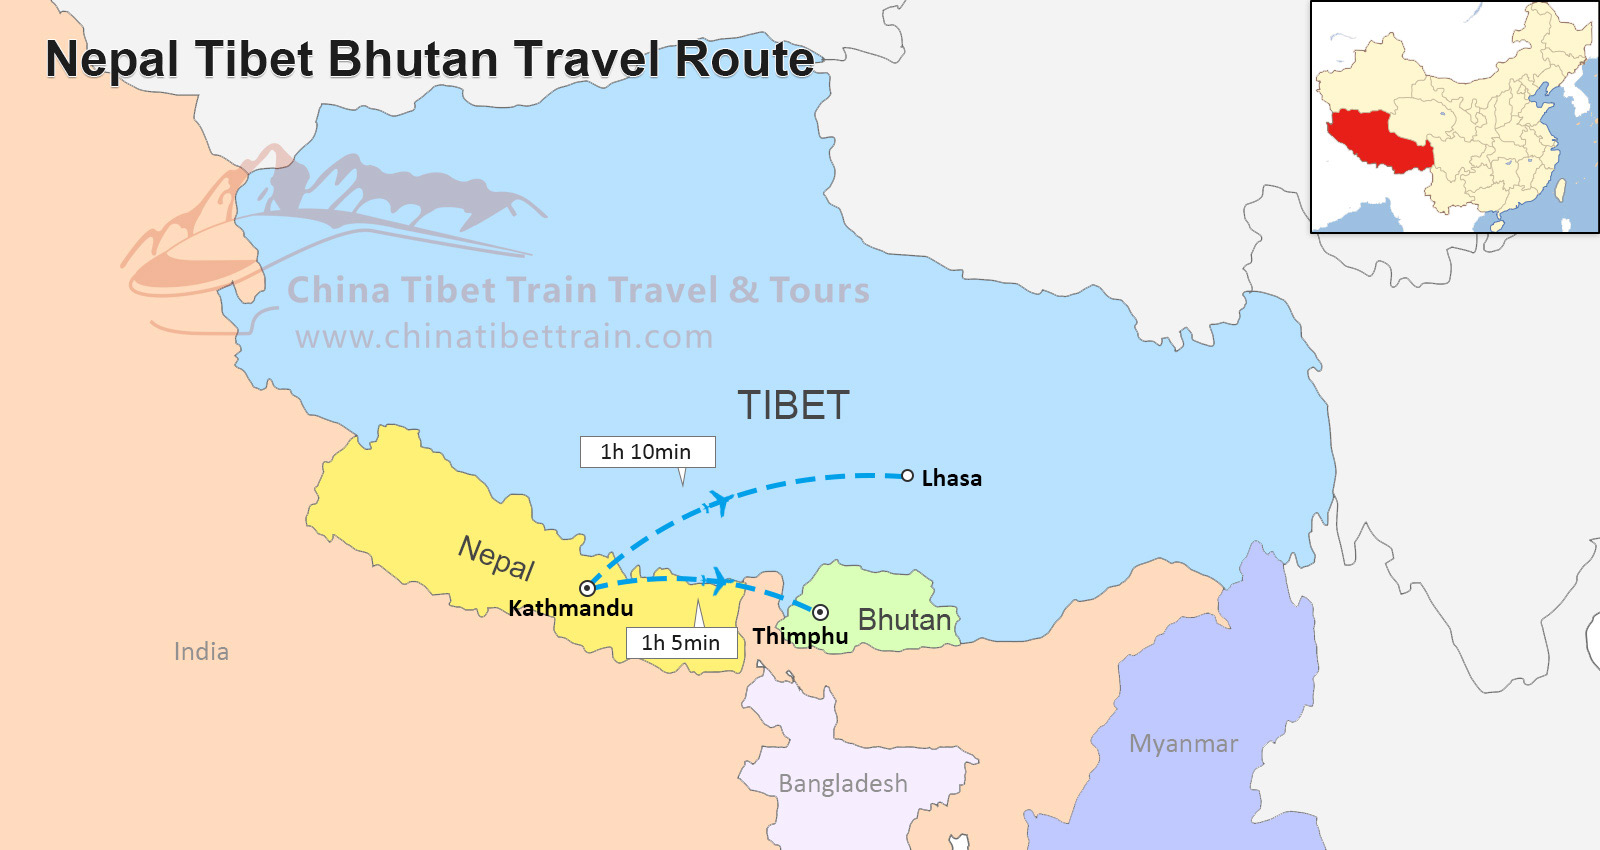 Nepal In The World Map.Tibet And Nepal Travel Maps Where Is Tibet And Nepal And How To